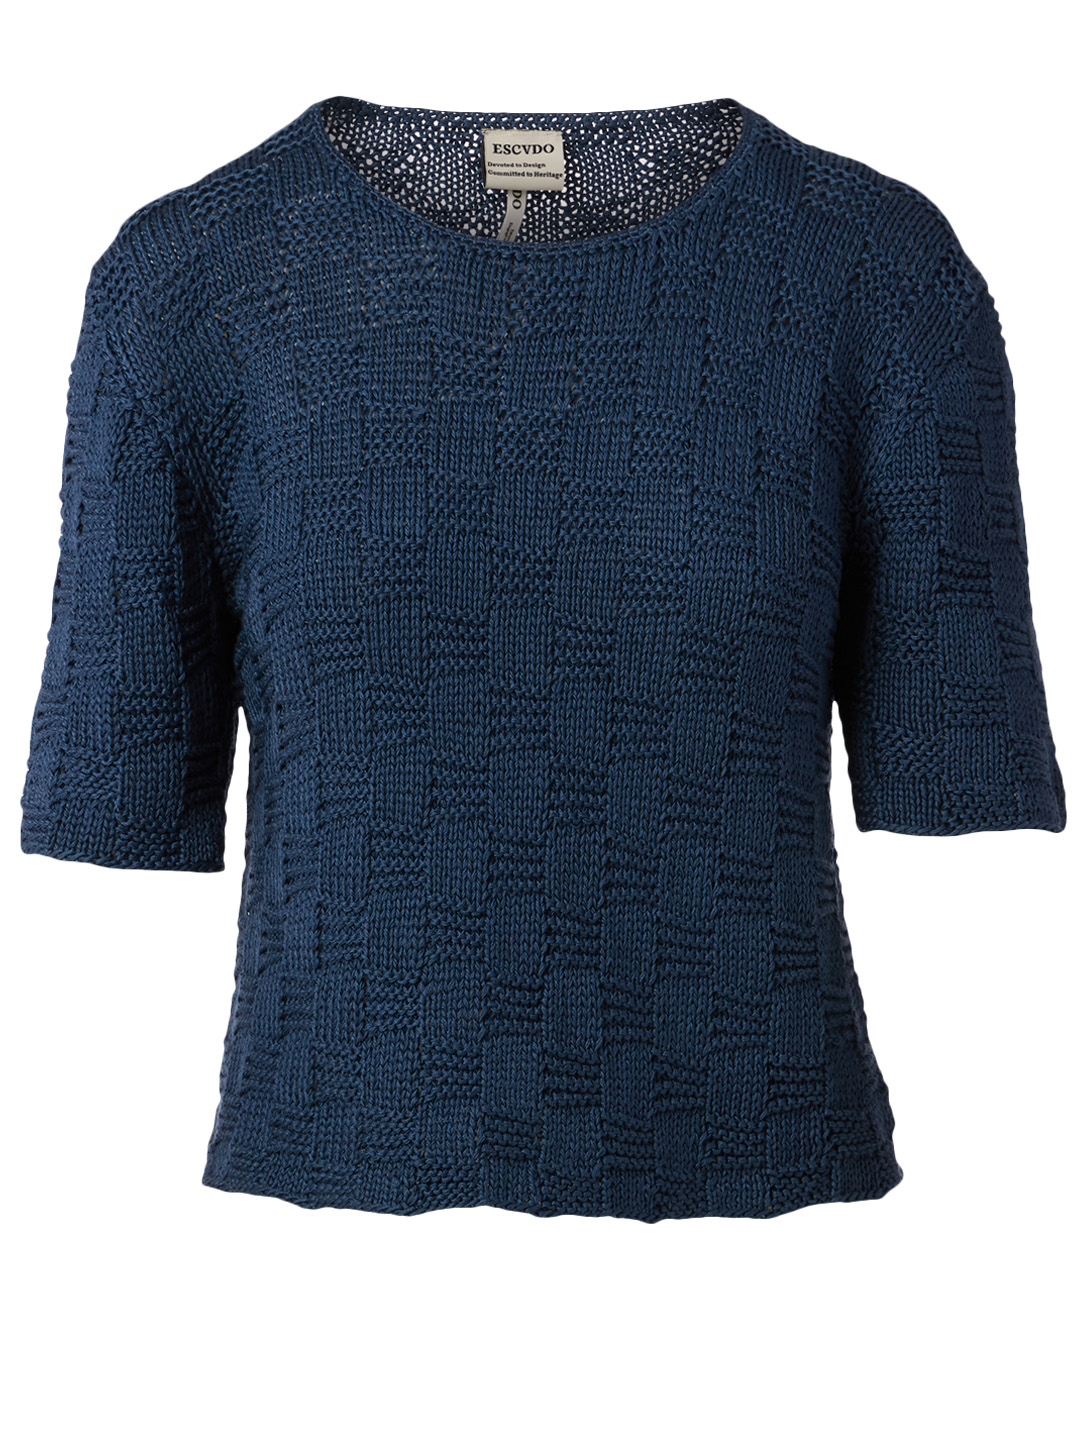 ESCVDO Stone Cotton Knit Top Women's Blue